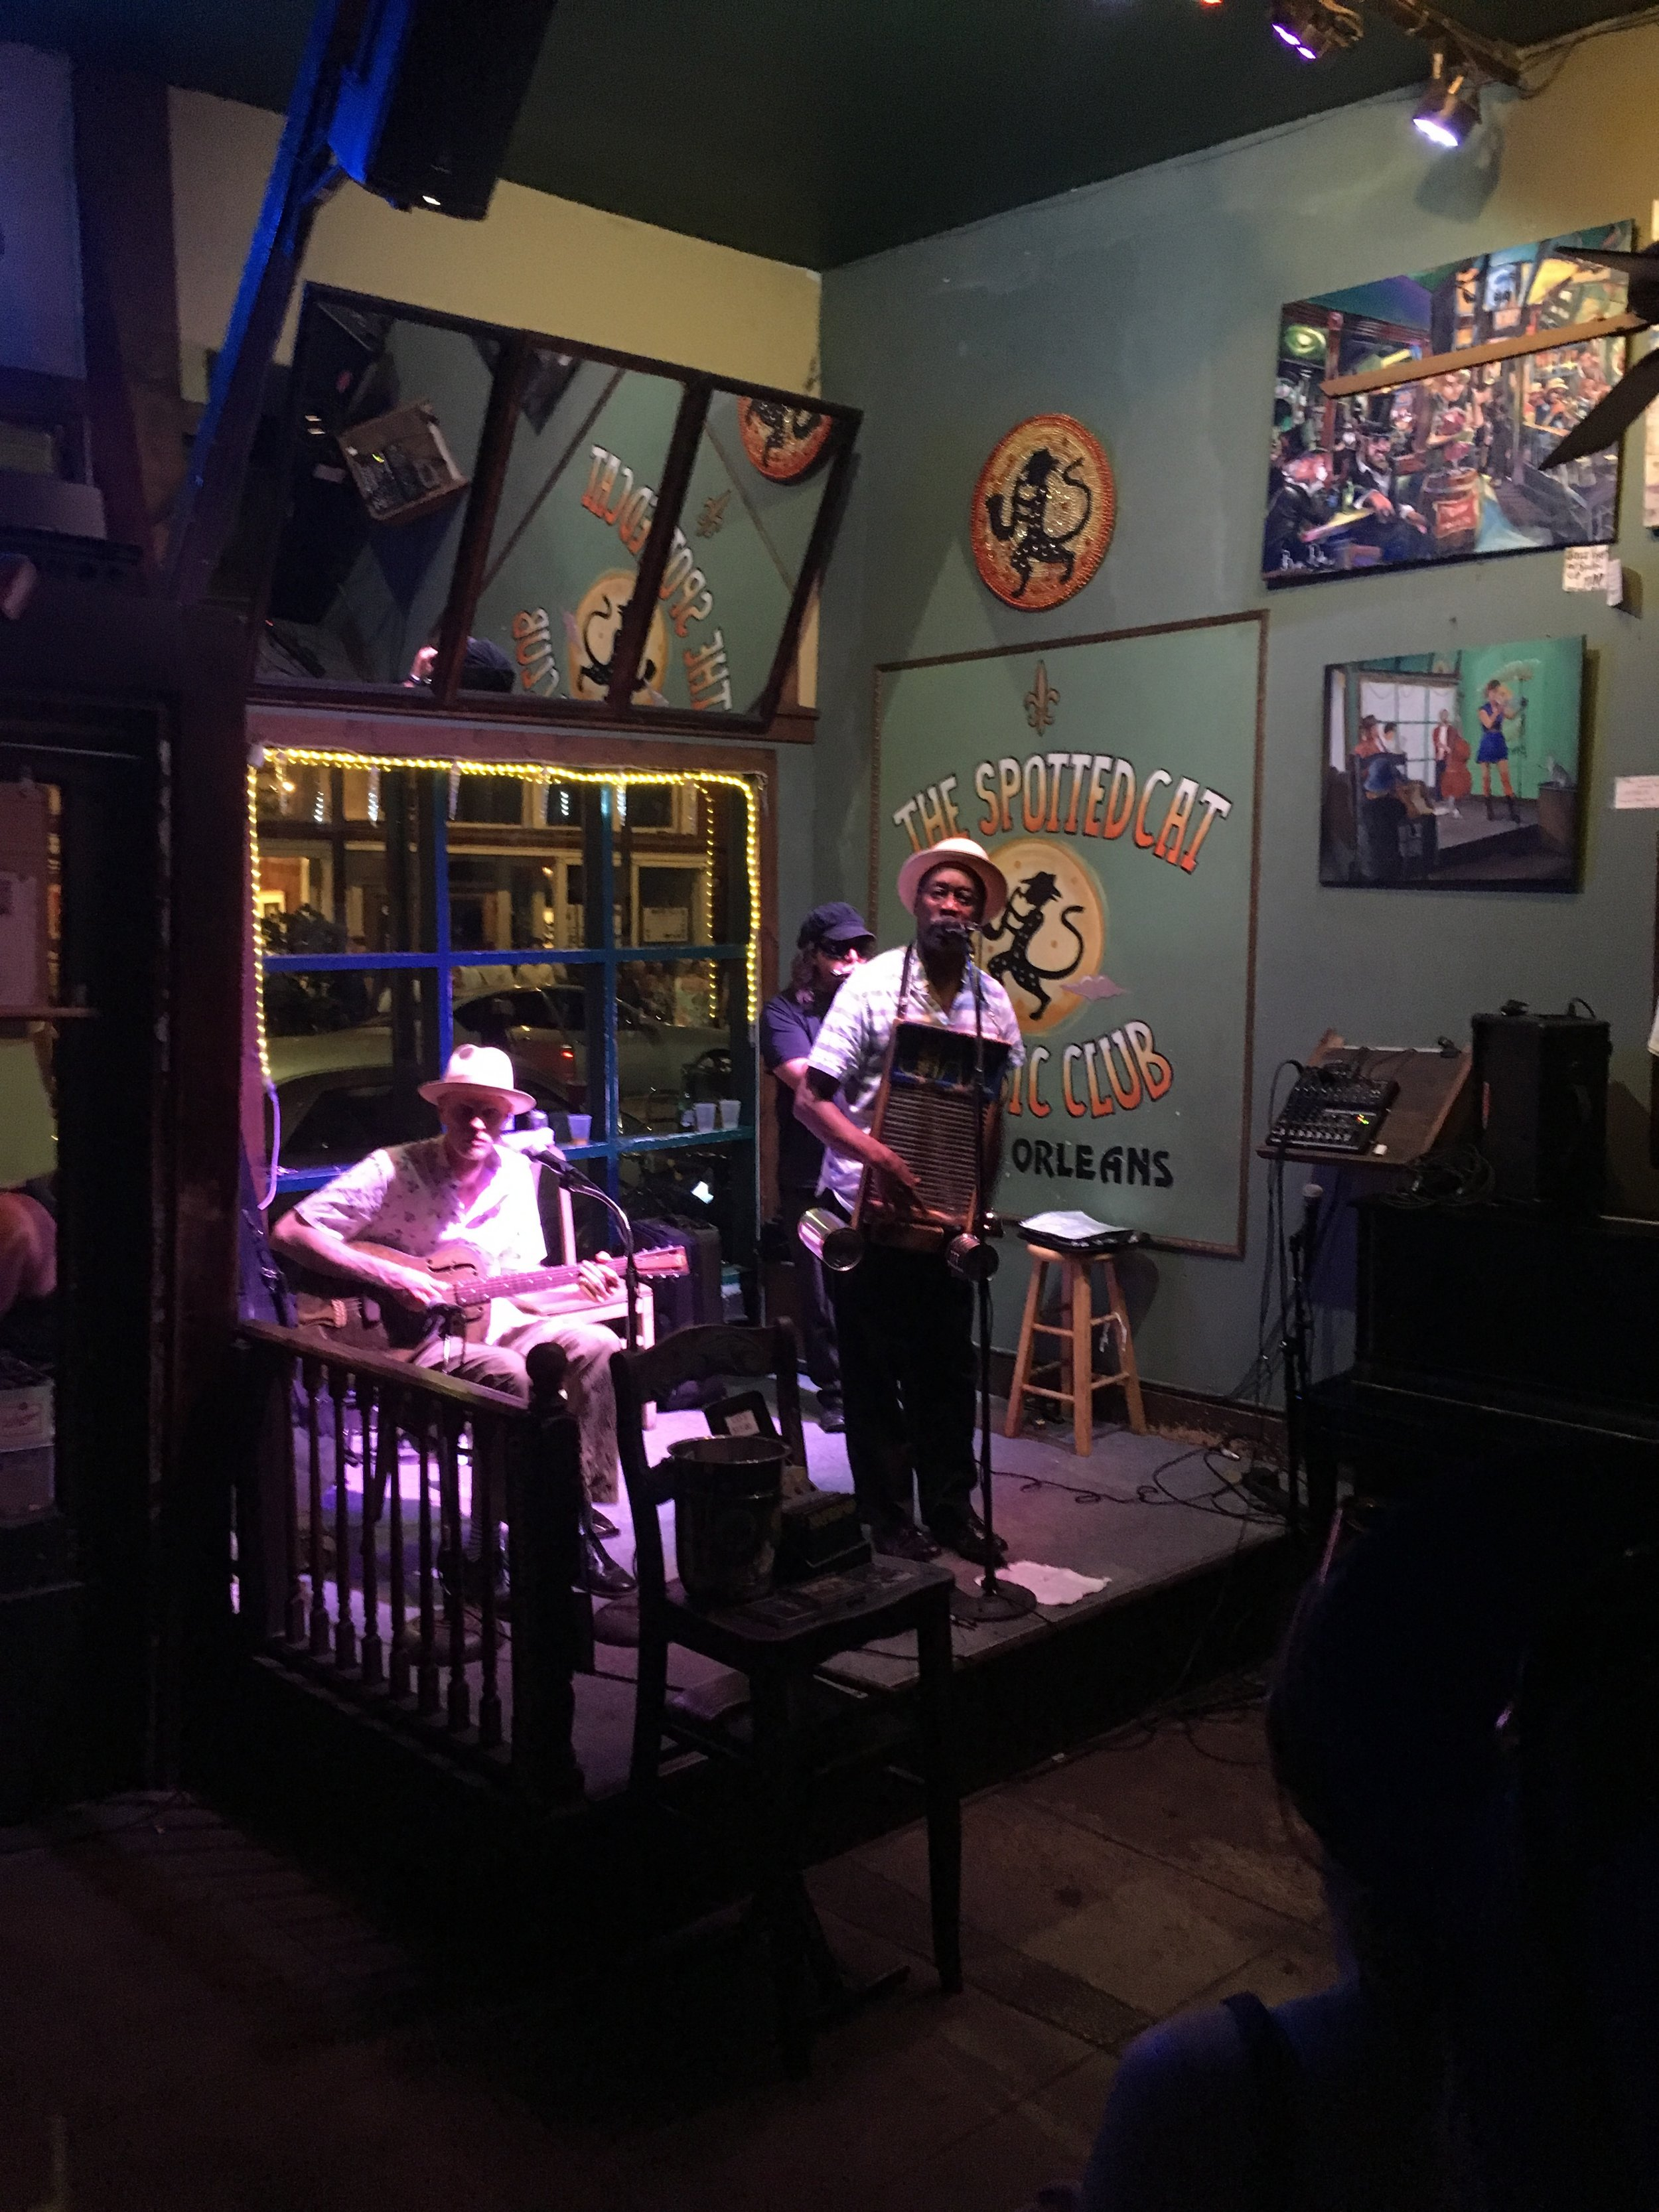 """Chris attended the 51st annual meeting of the Society for the Study of Reproduction meeting in New Orleans, LA. He chaired a Focus Session entitled """"Pathways to Sex Determination"""". While the meeting was not held at the Spotted Cat Music Club (shown above), we did listen to some great local jazz bands there!"""